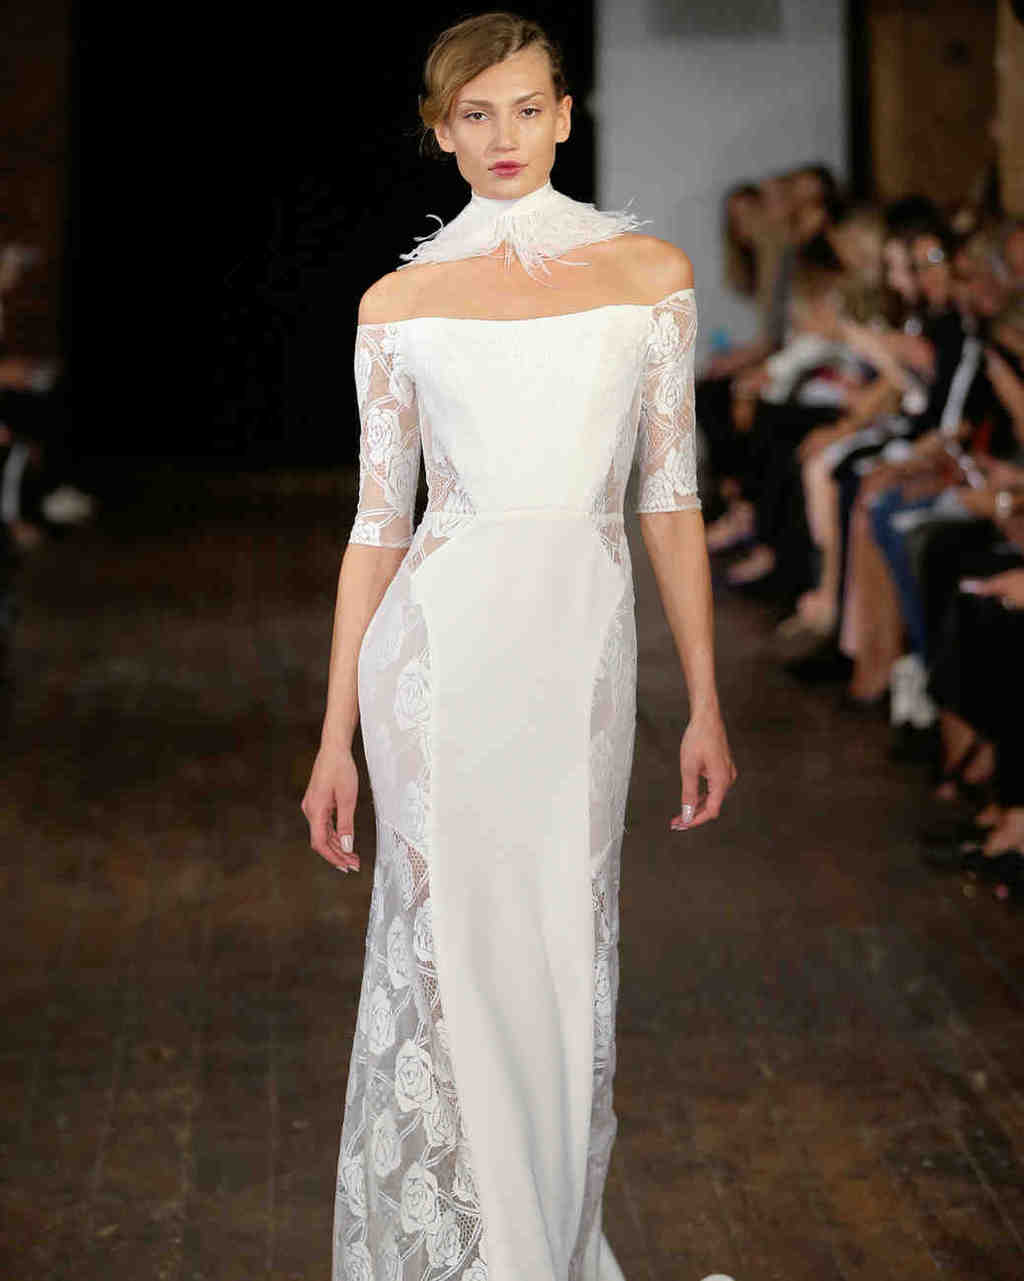 Rivini-wedding-dress-fall2017-62033510-001_vert